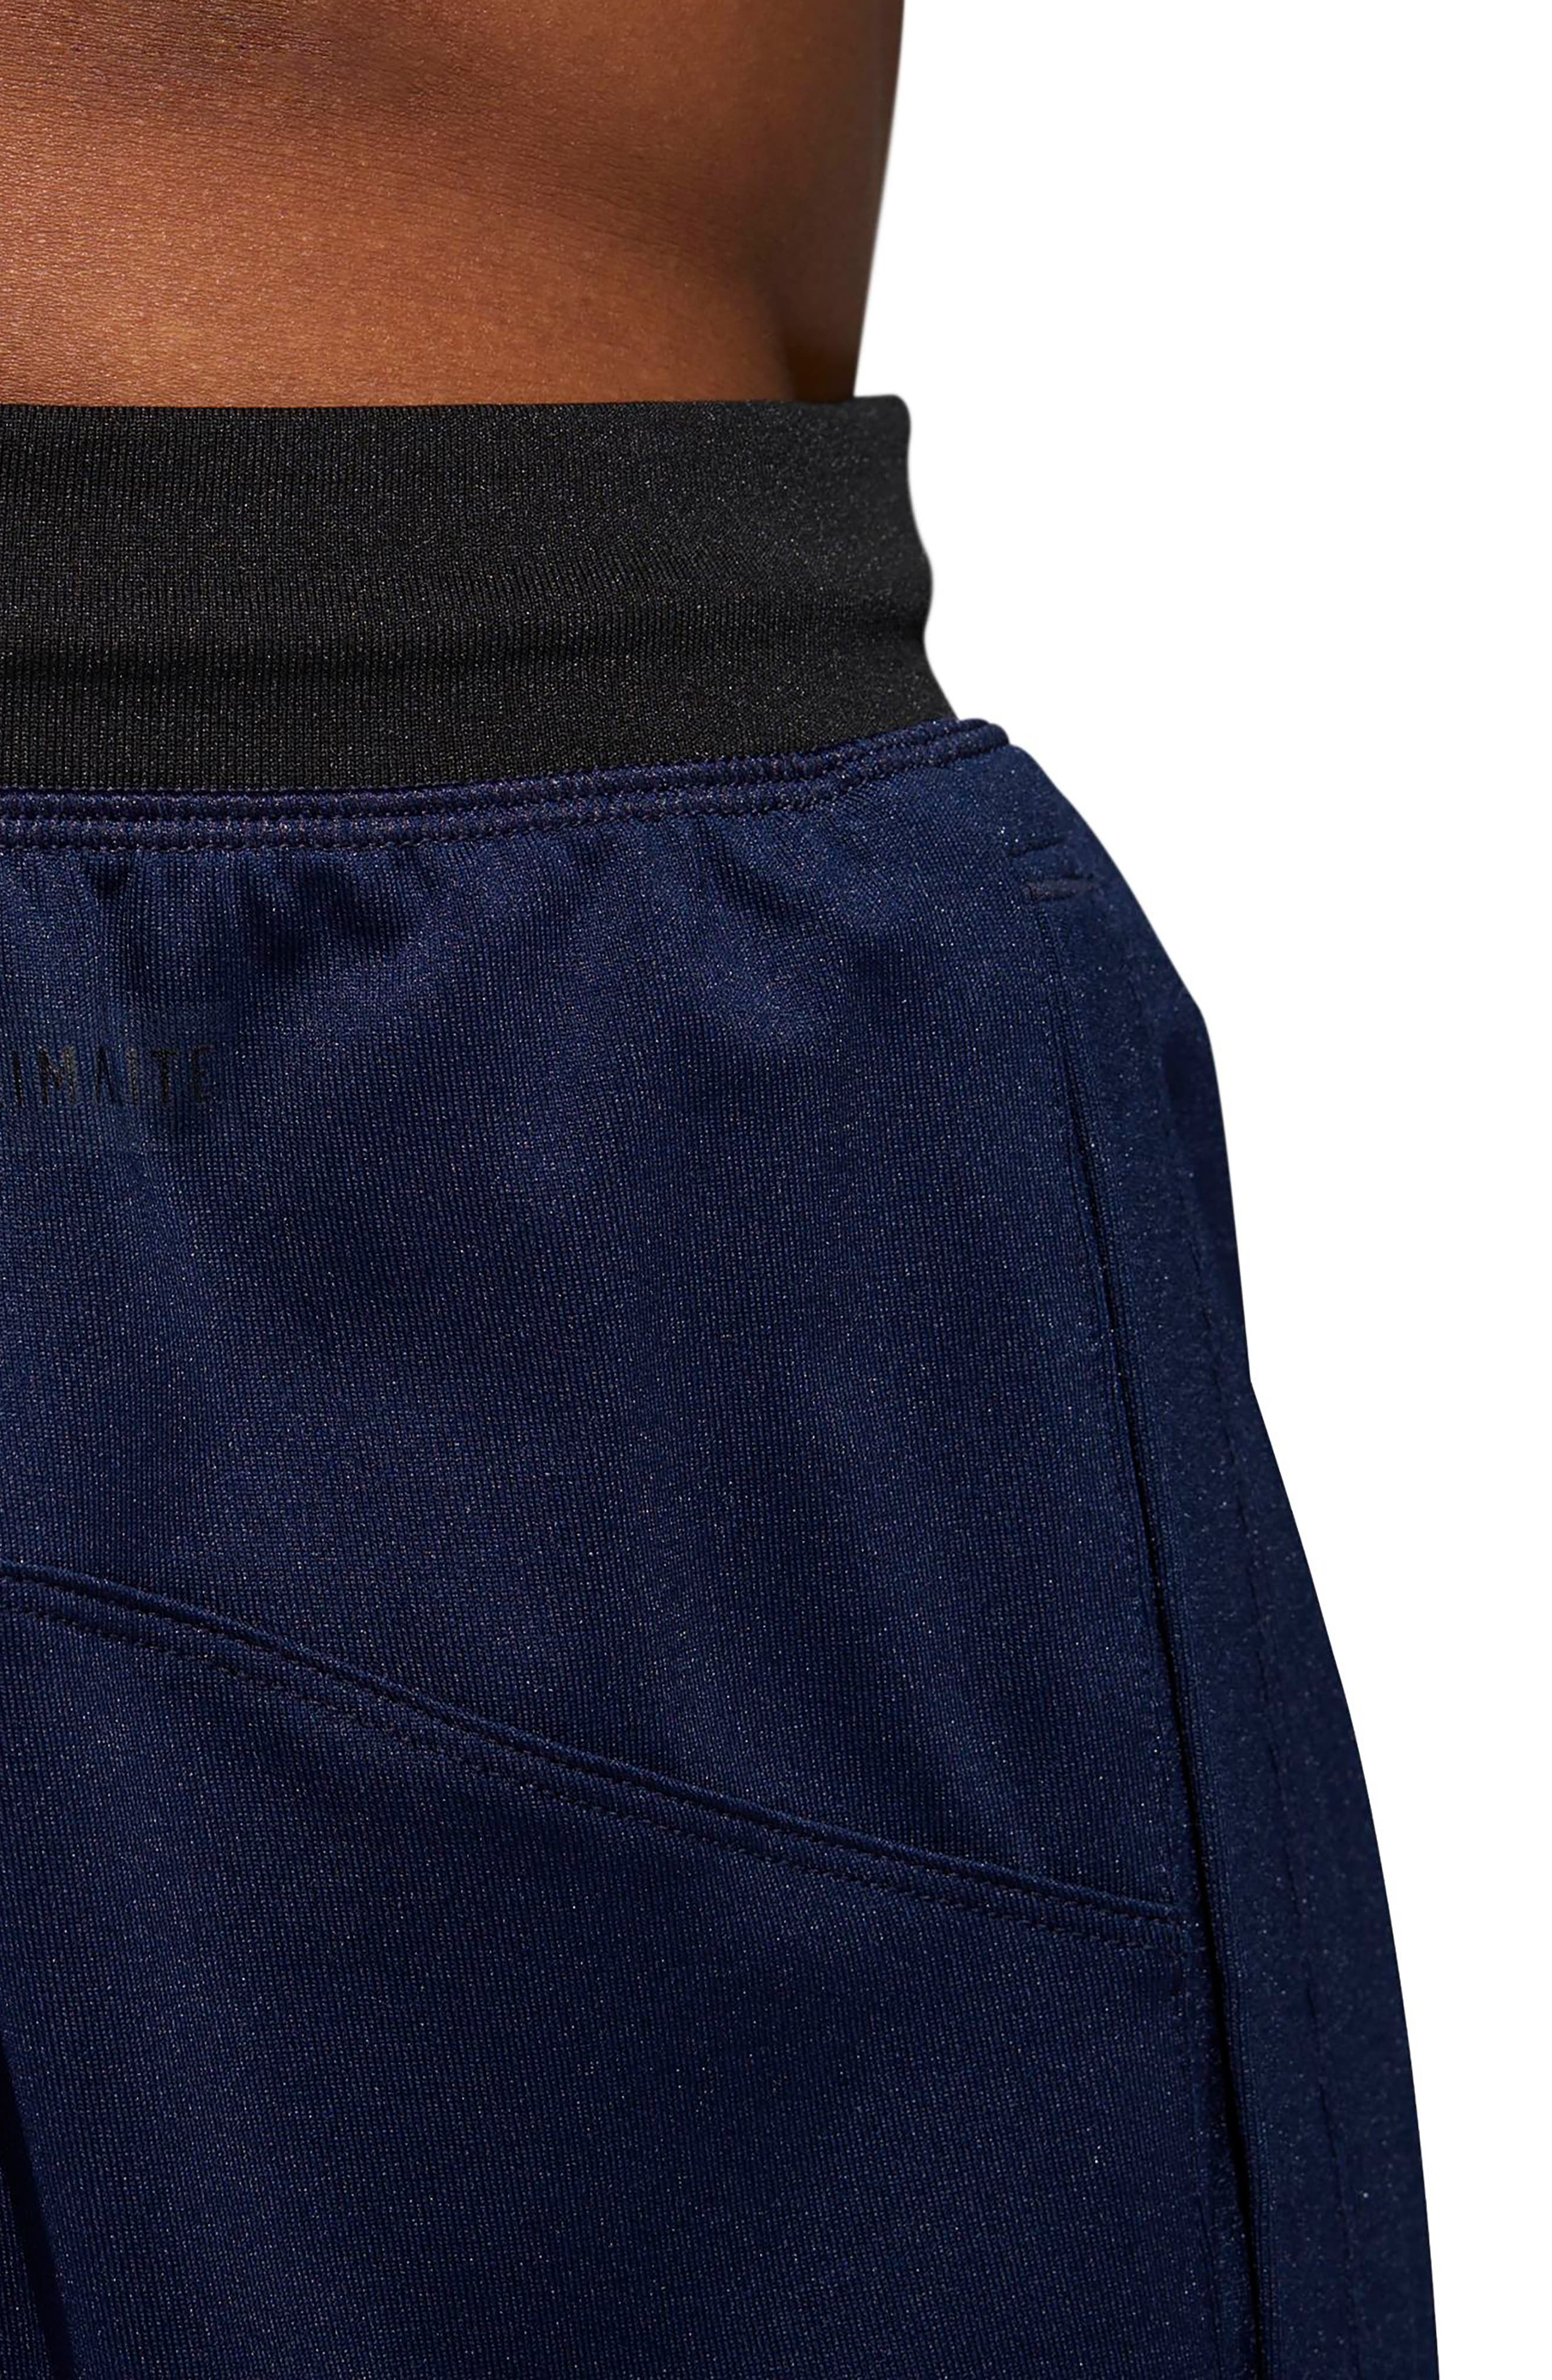 SB Hype Icon Shorts,                             Alternate thumbnail 8, color,                             COLLEGIATE NAVY/ BLACK